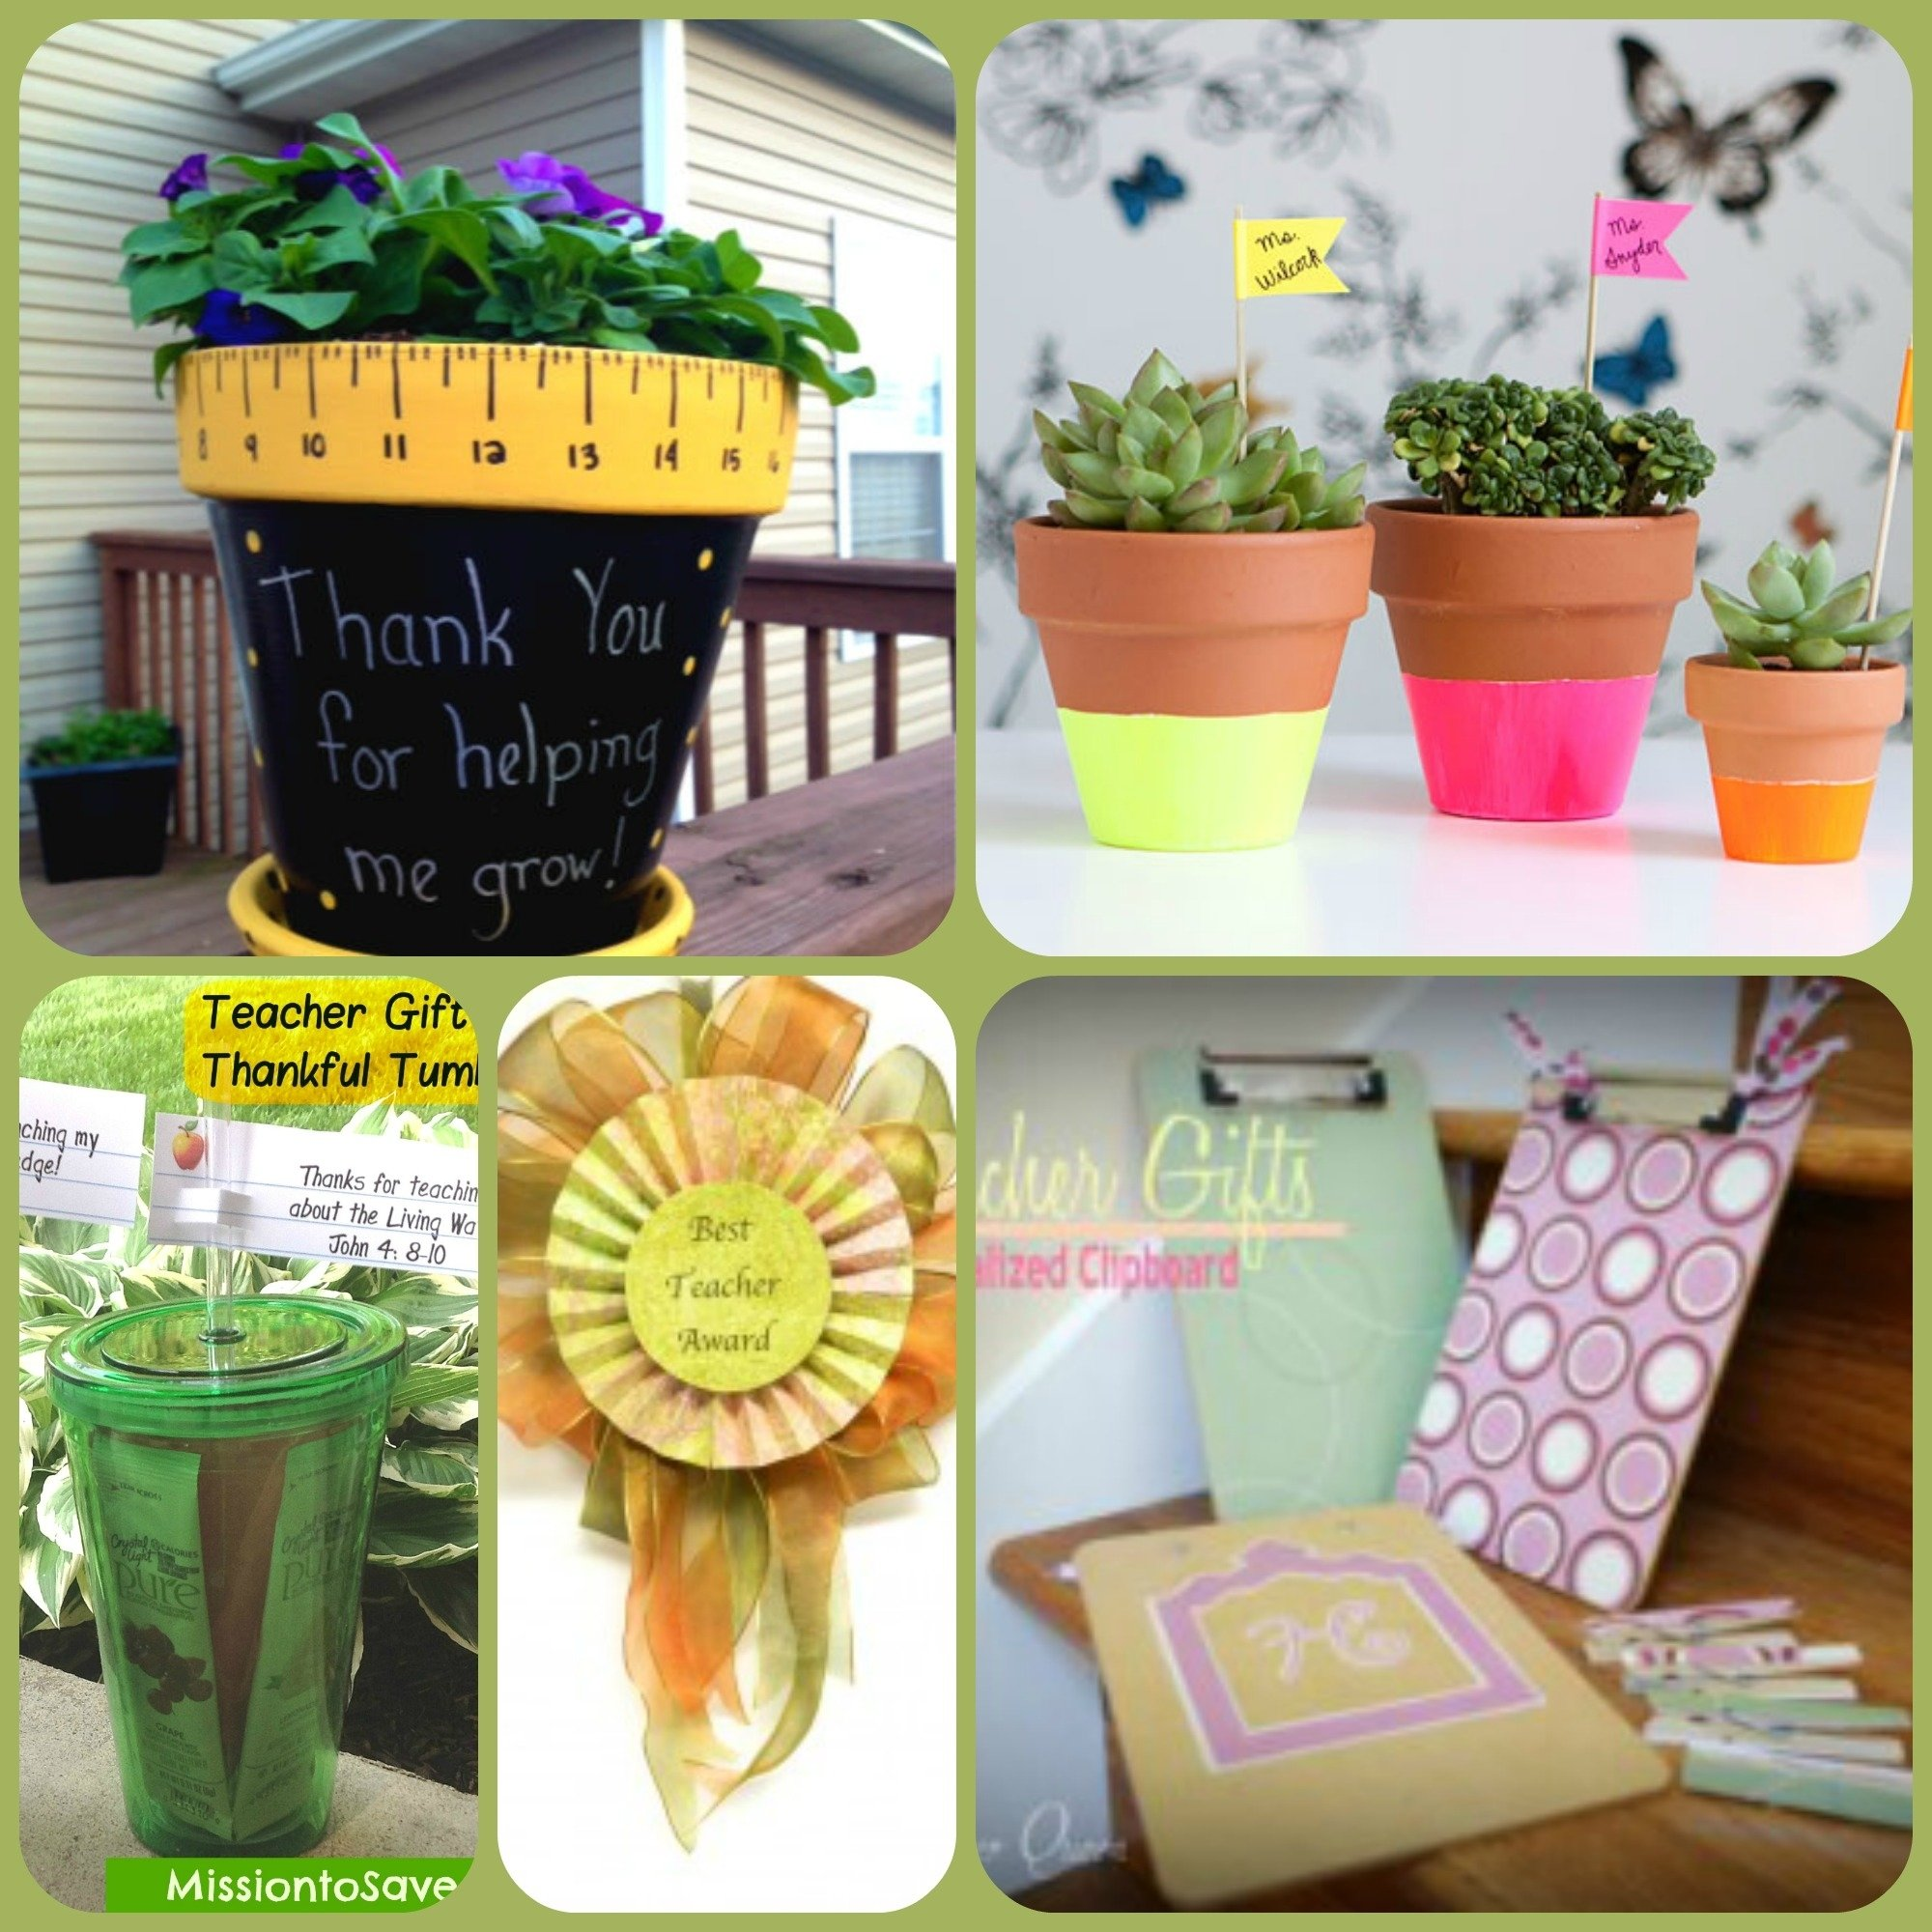 10 Spectacular Thank You Ideas For Teachers 25 teacher gift ideas farmers wife rambles 2 2020